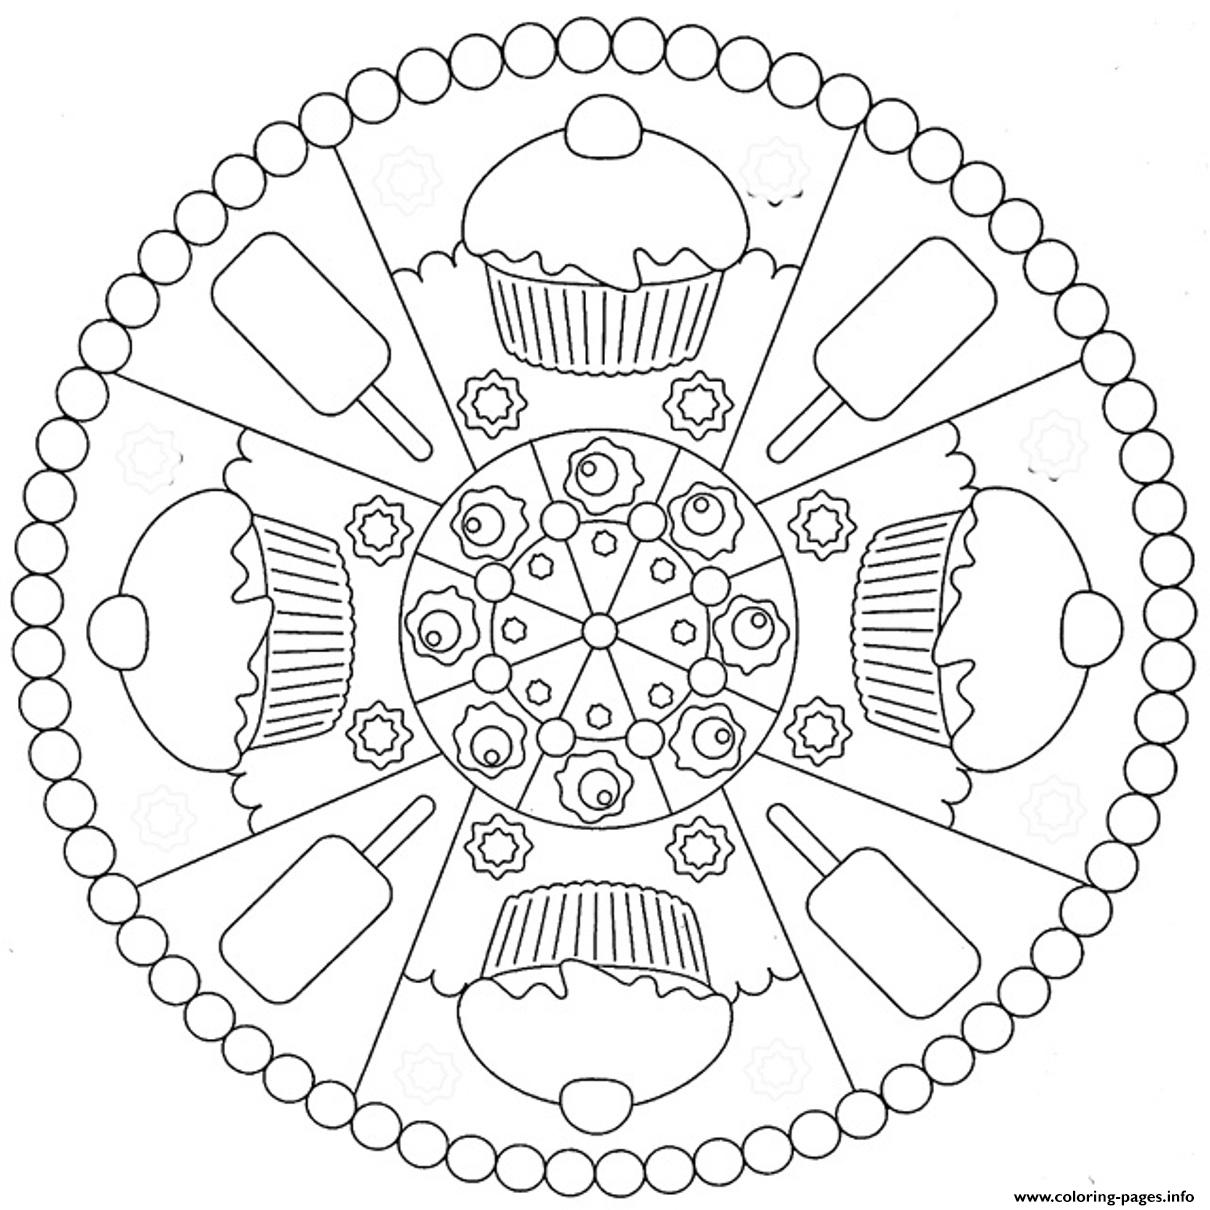 mandala coloring pages kids - cookies and ice cream mandala s31a7 coloring pages printable